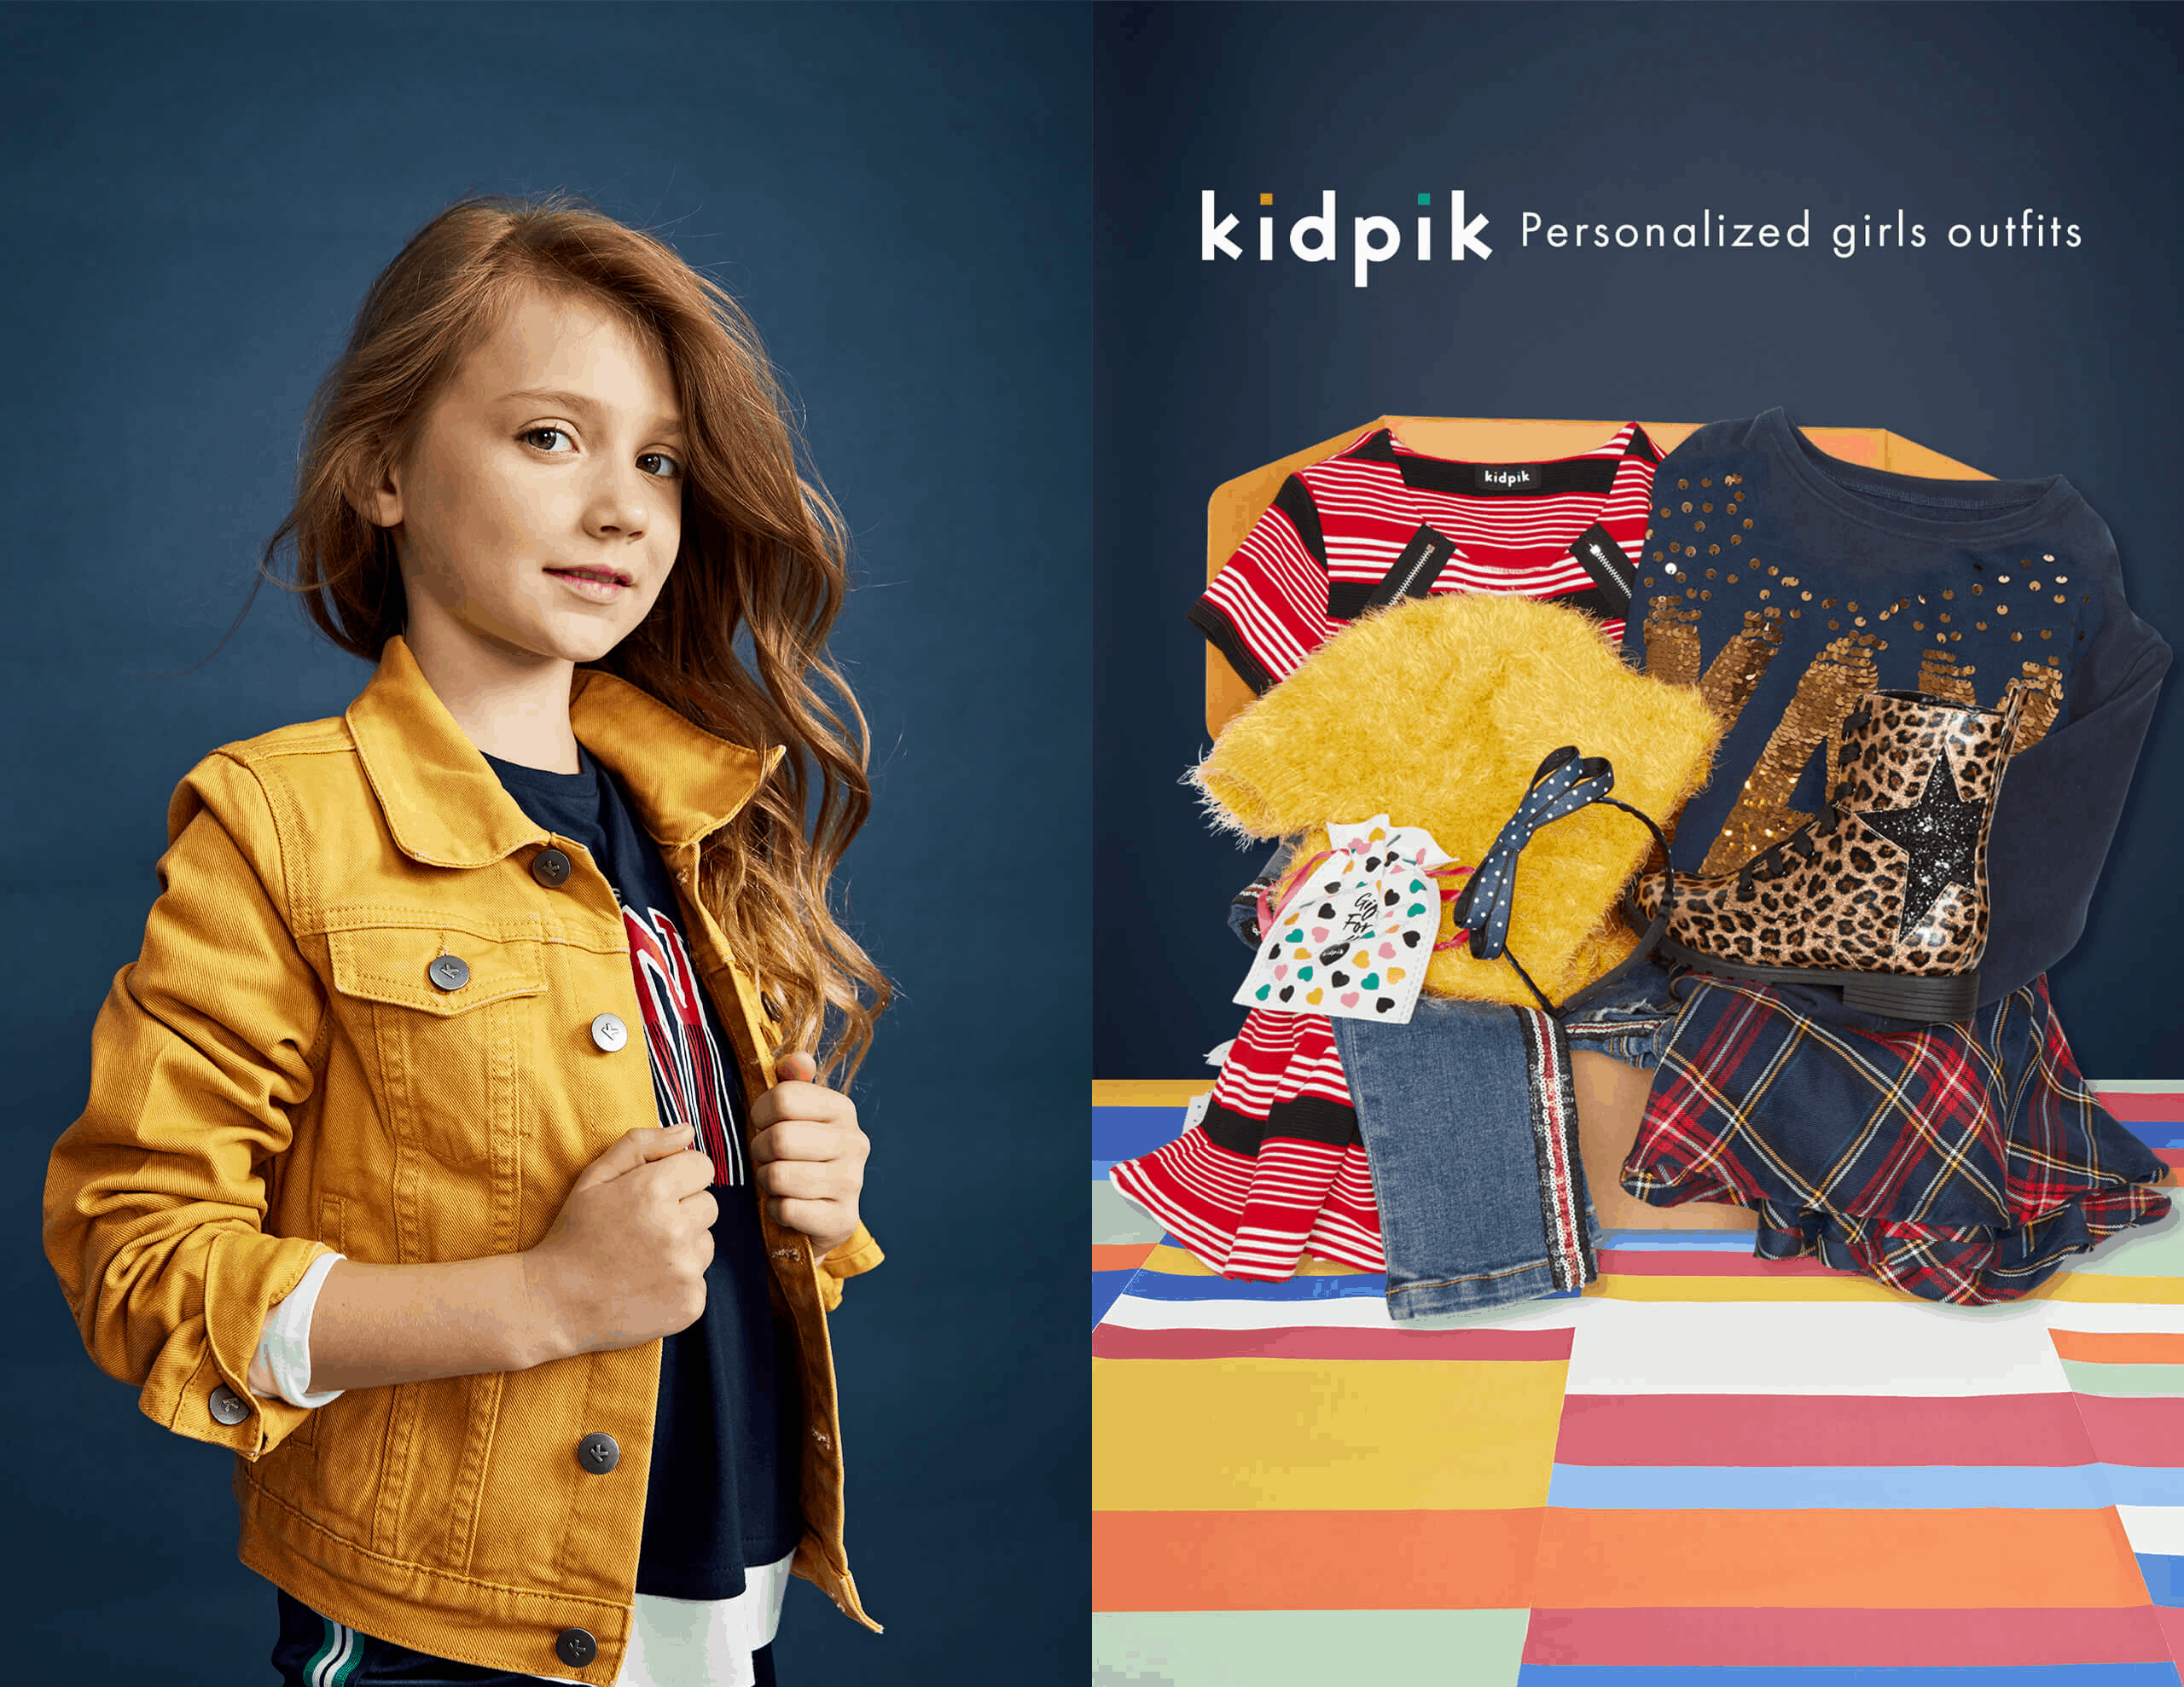 Kidpik Veteran's Day Sale: Get 40% Off Your First Box!